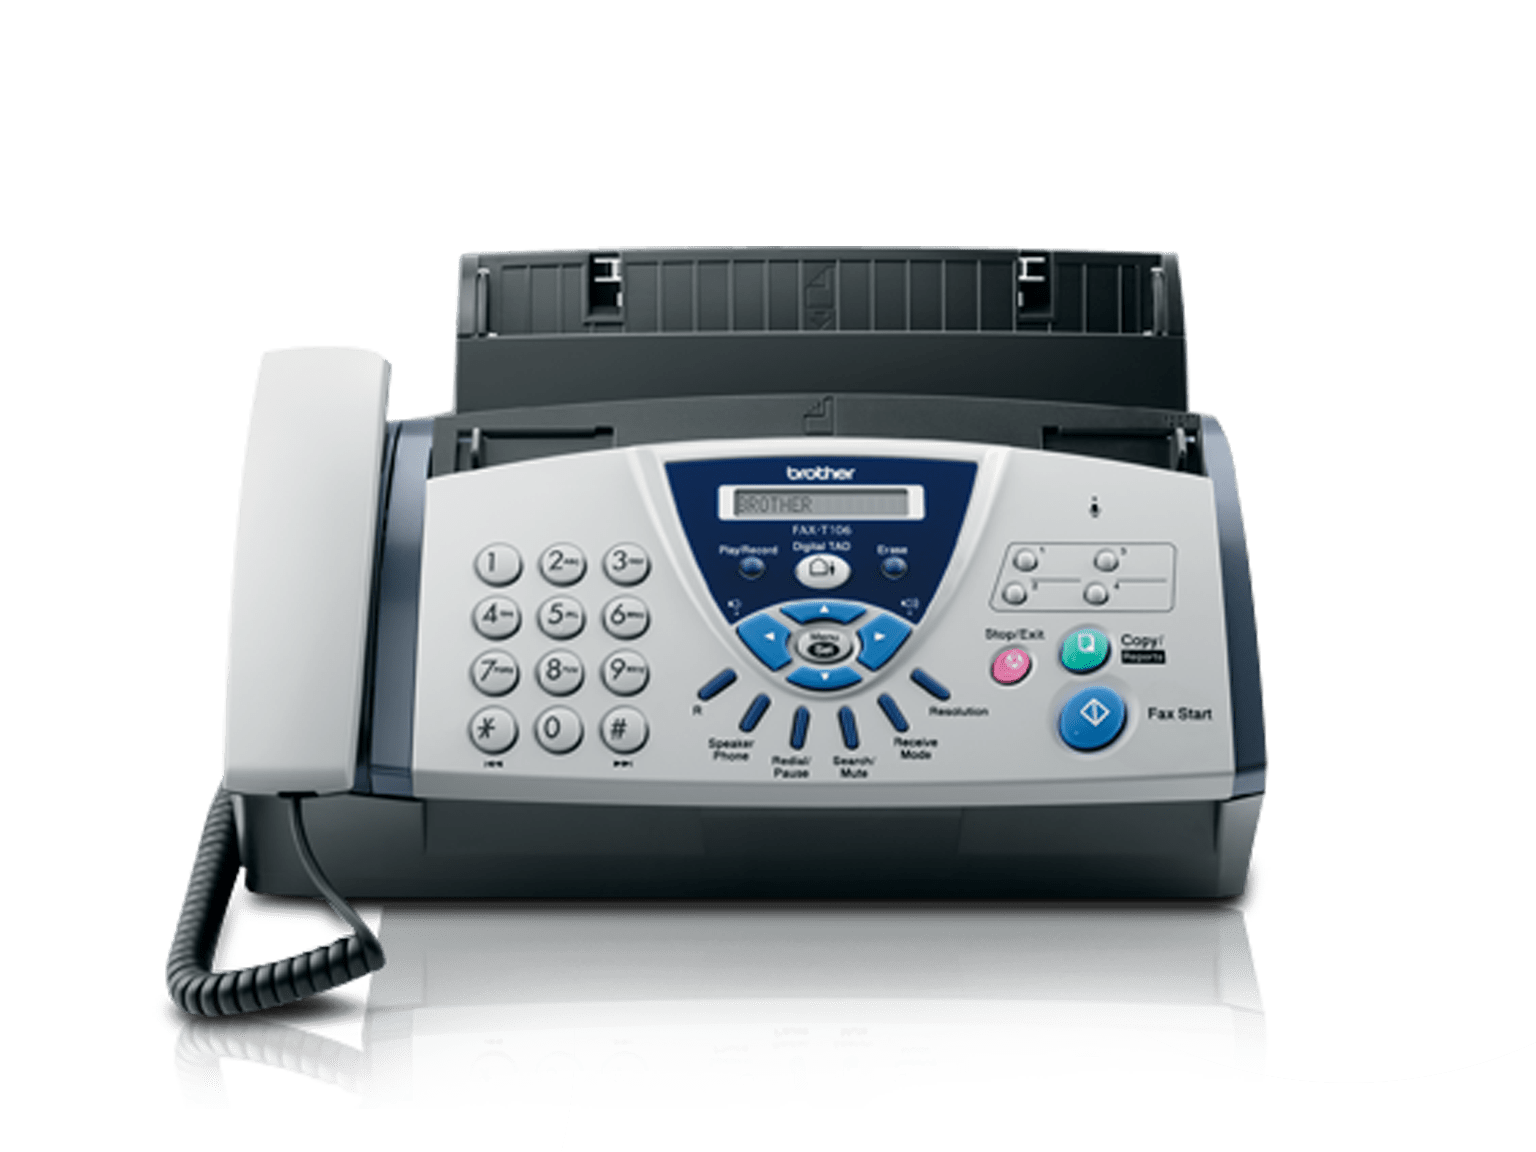 Fax Machines for Office & Home | Brother